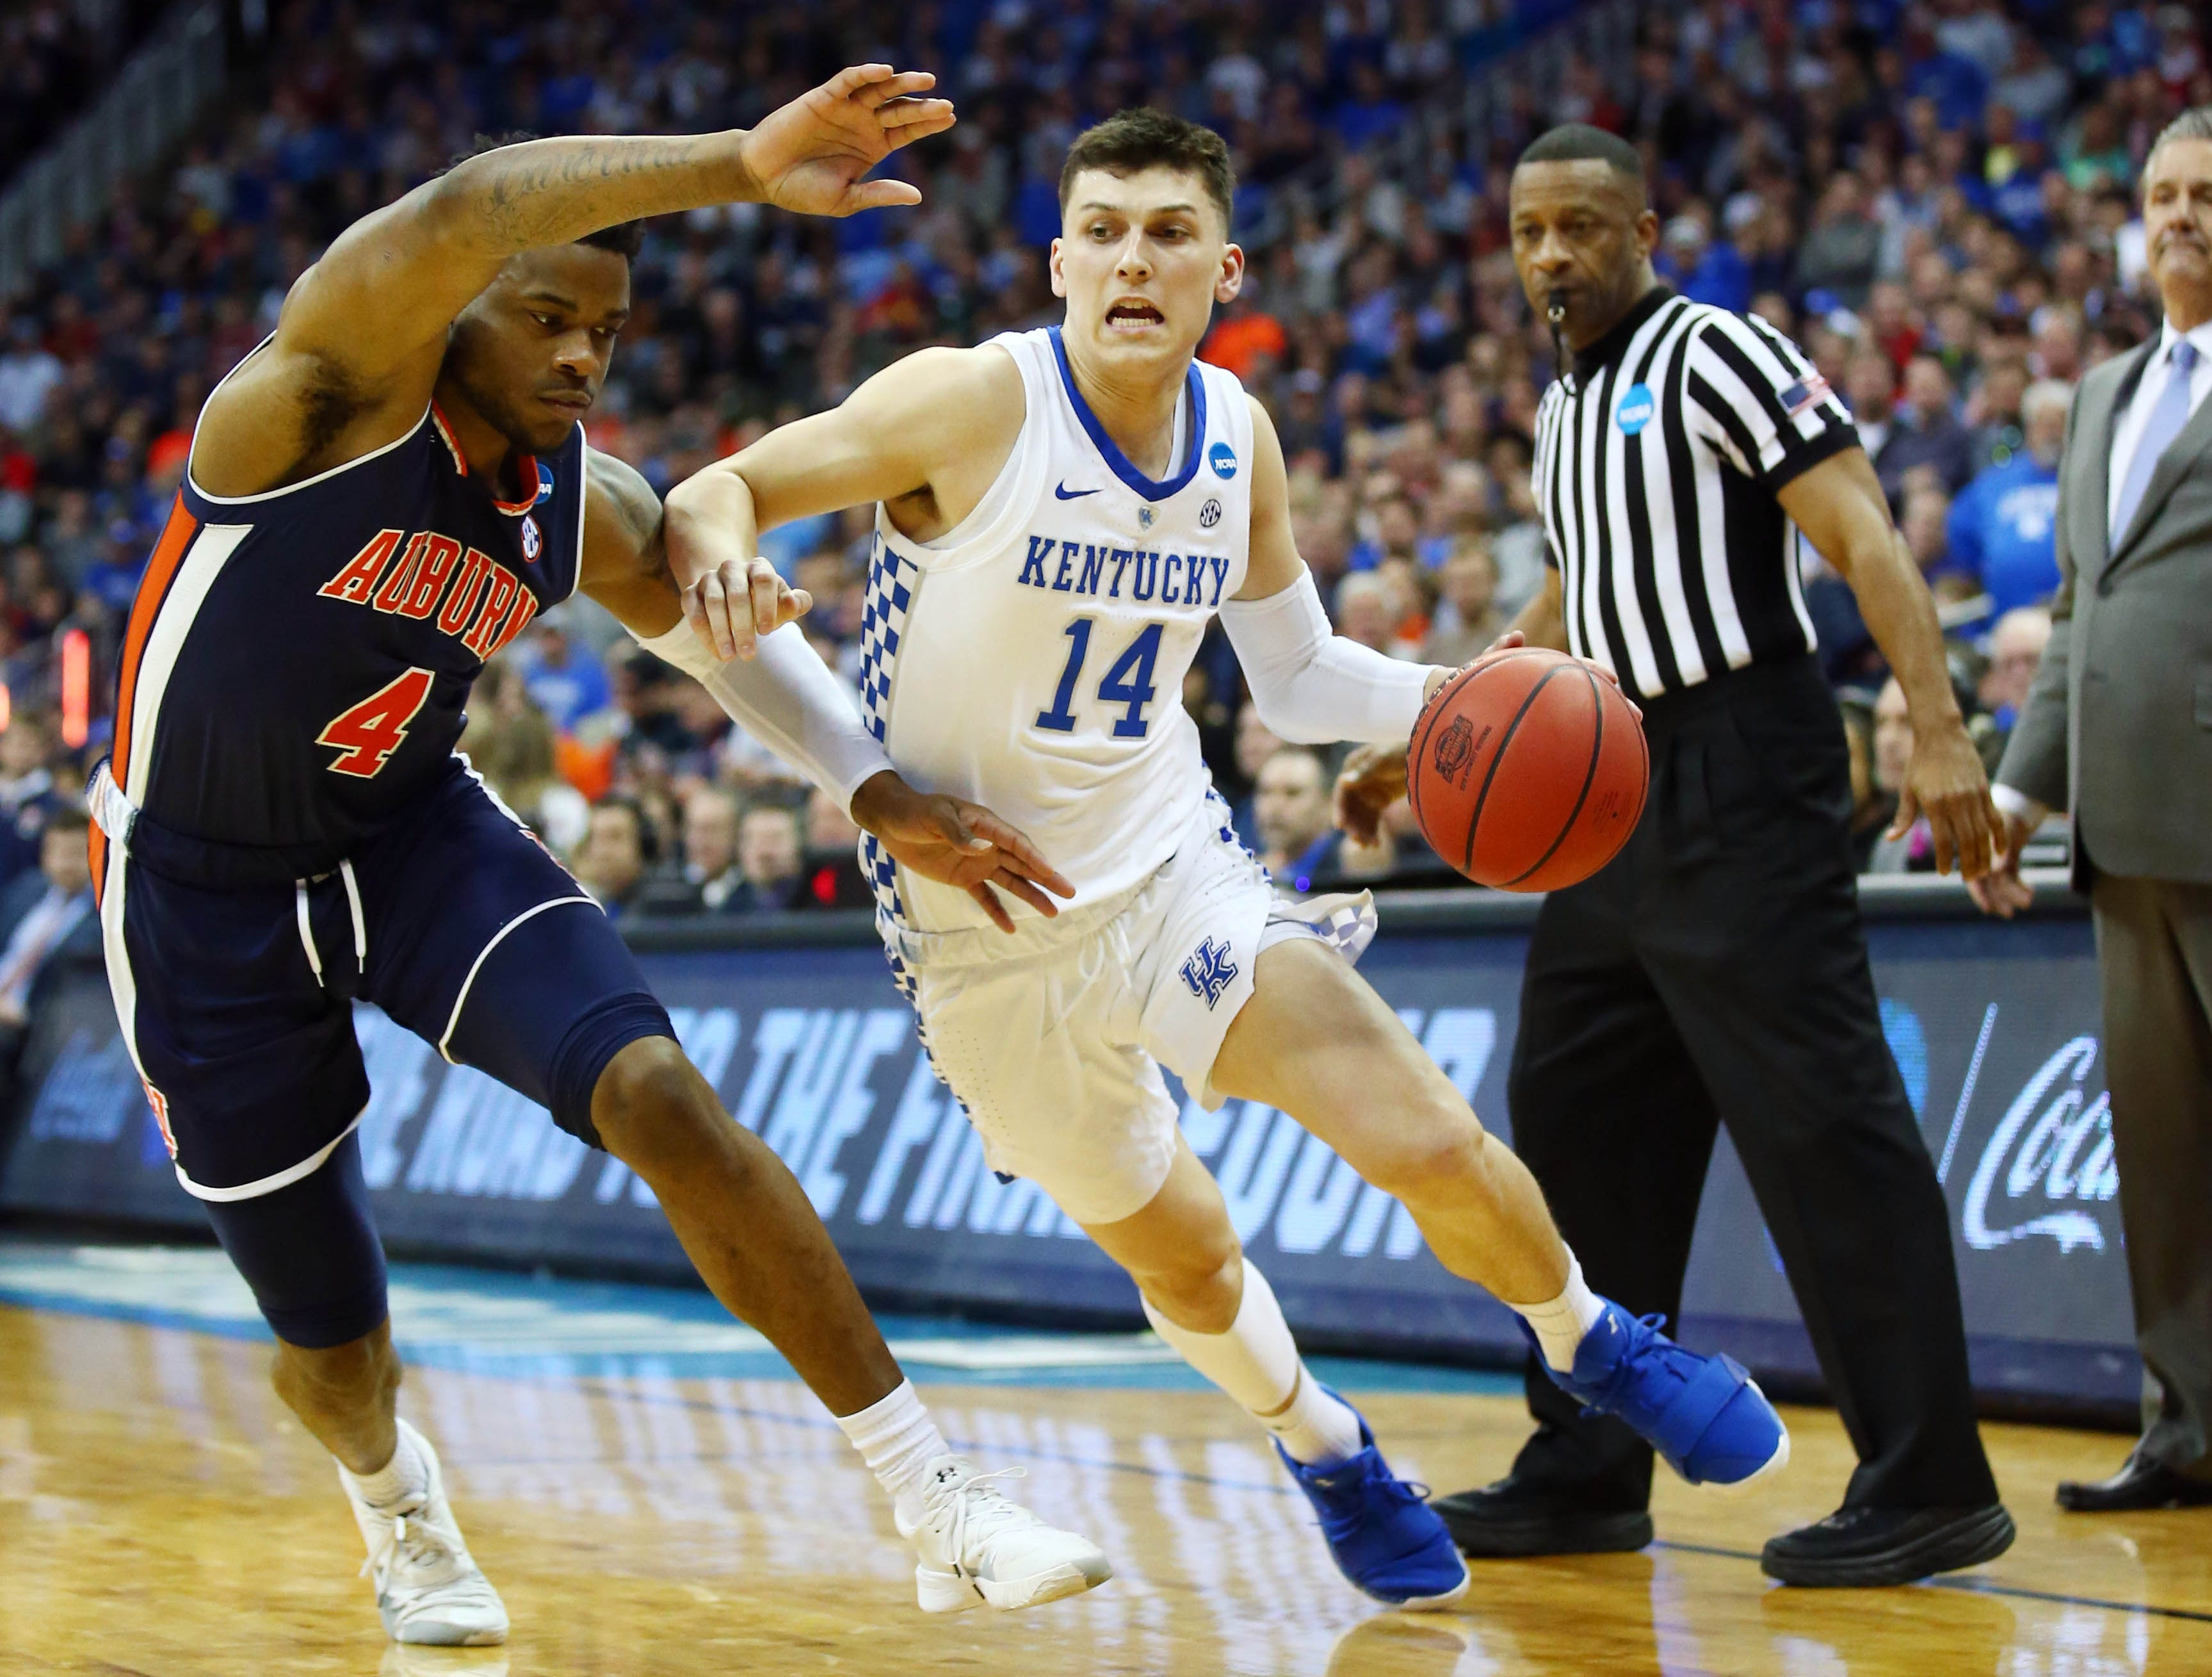 Mar 31, 2019; Kansas City, MO, United States; Kentucky Wildcats guard Tyler Herro (14) dribbles againt Auburn Tigers guard Malik Dunbar (4) during the second half in the championship game of the midwest regional of the 2019 NCAA Tournament at Sprint Center. Mandatory Credit: Jay Biggerstaff-USA TODAY Sports